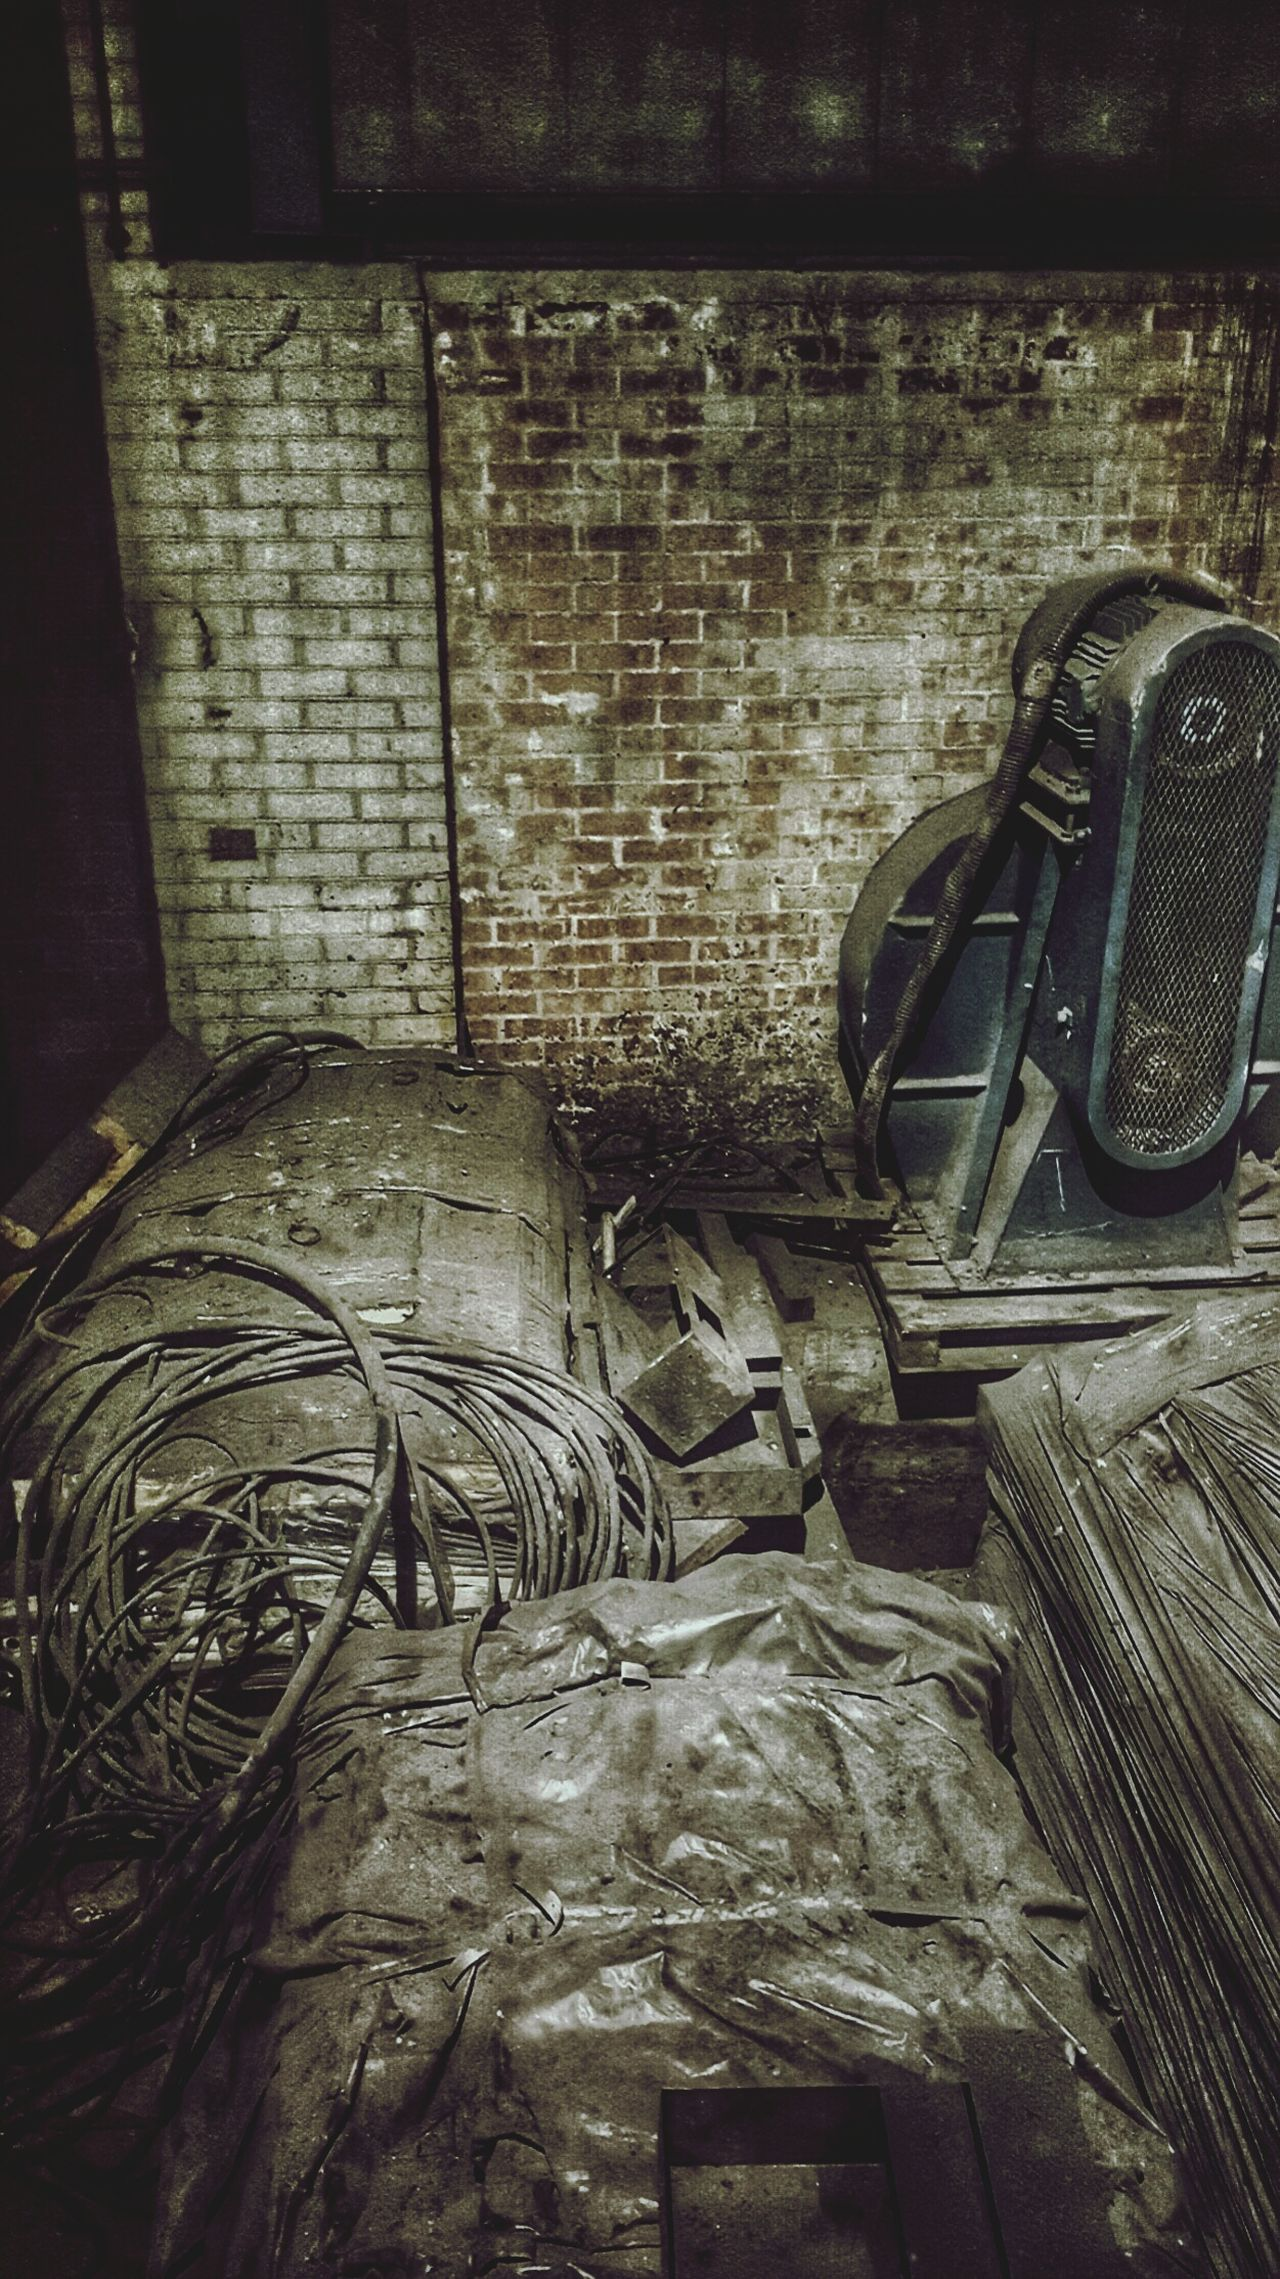 No People Textured  Indoors  Close-up Backgrounds Day Industrial Industry Old Old Buildings Bricks Photograpy Motor Cables Edit Work Dust Dusty